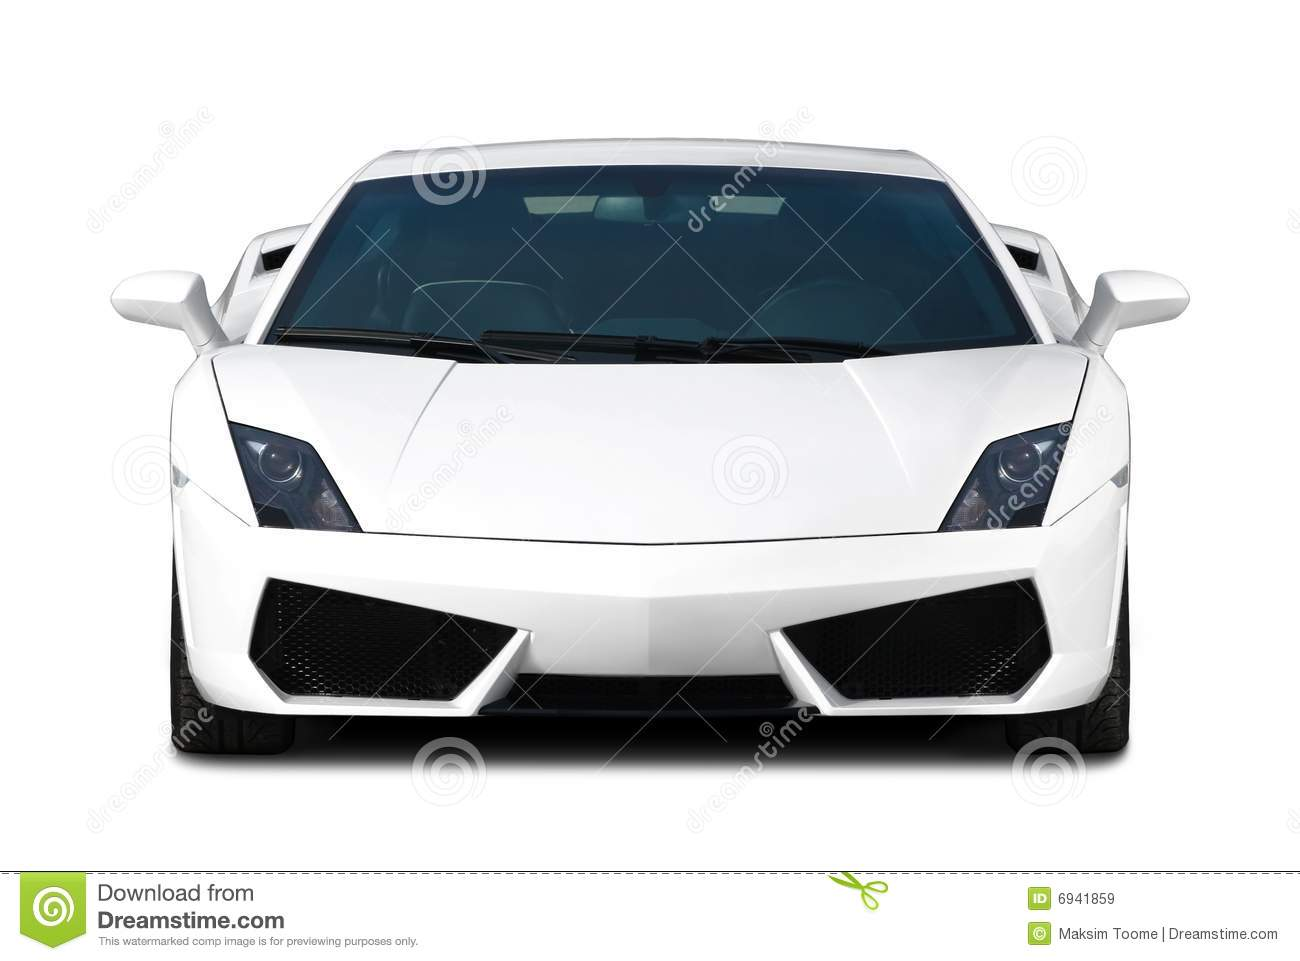 Max Power Cars Wallpaper White Supercar Front View Royalty Free Stock Images